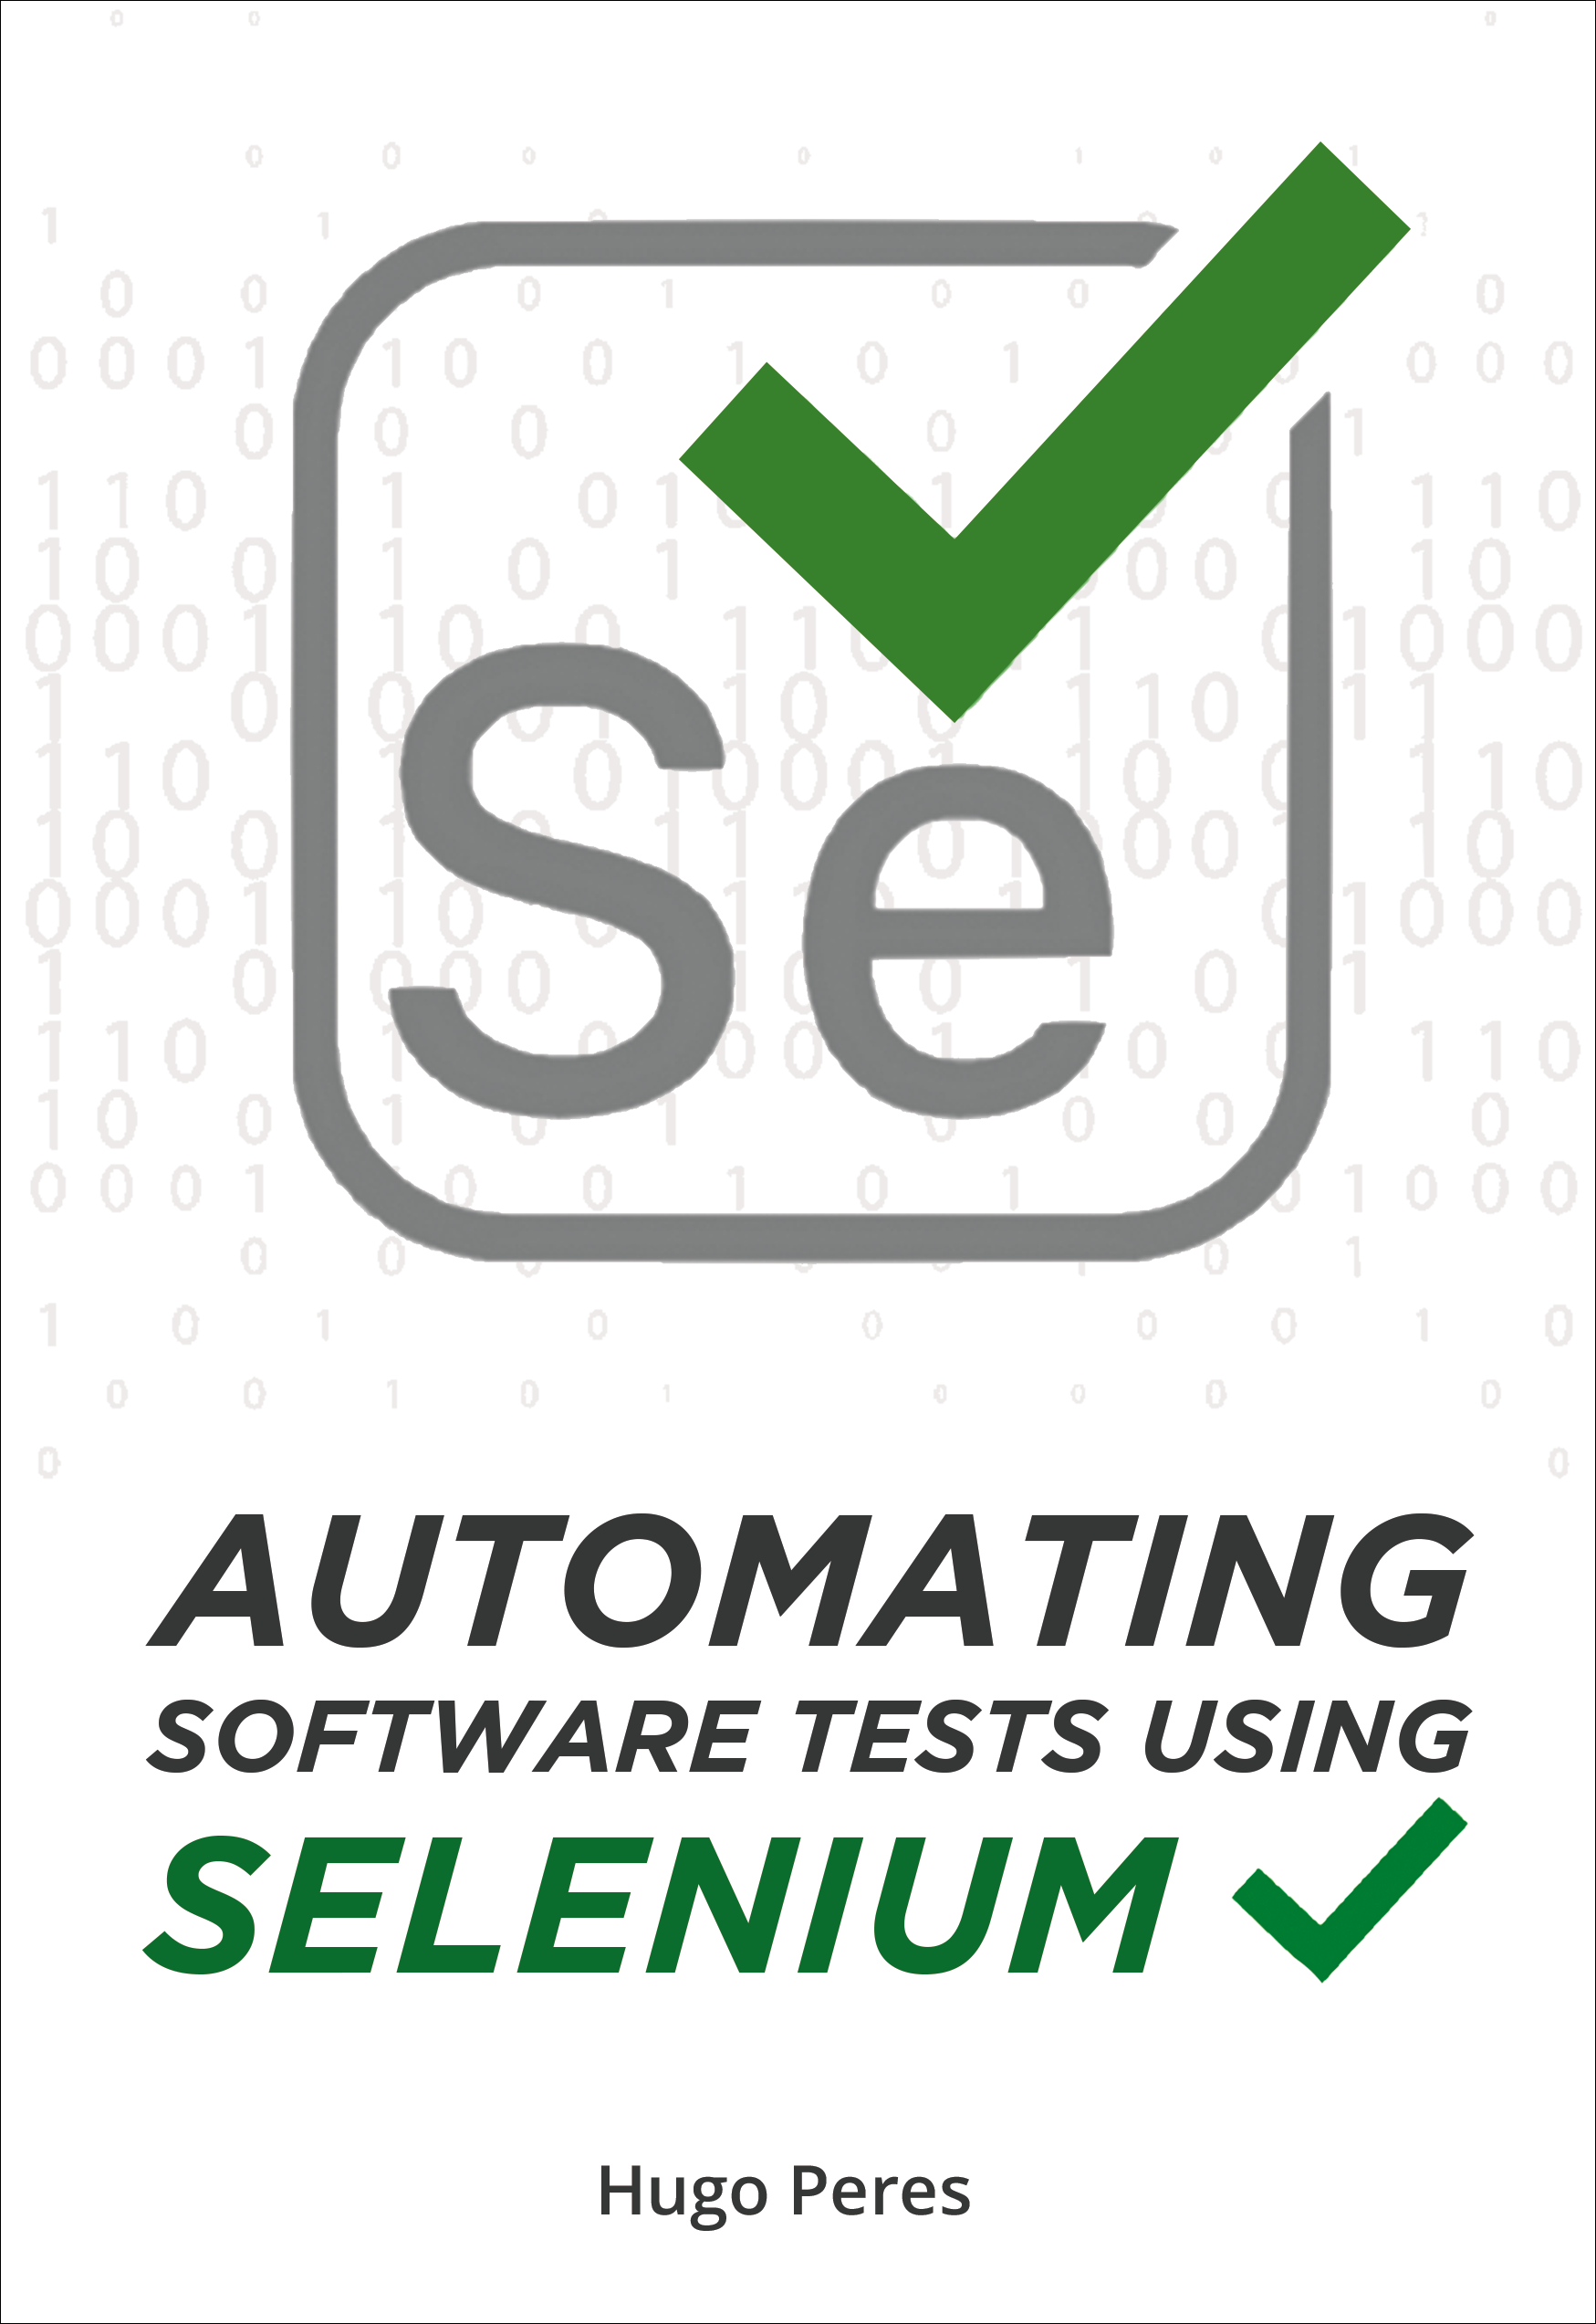 Automating Software Tests Using Selenium, an Ebook by Hugo Peres